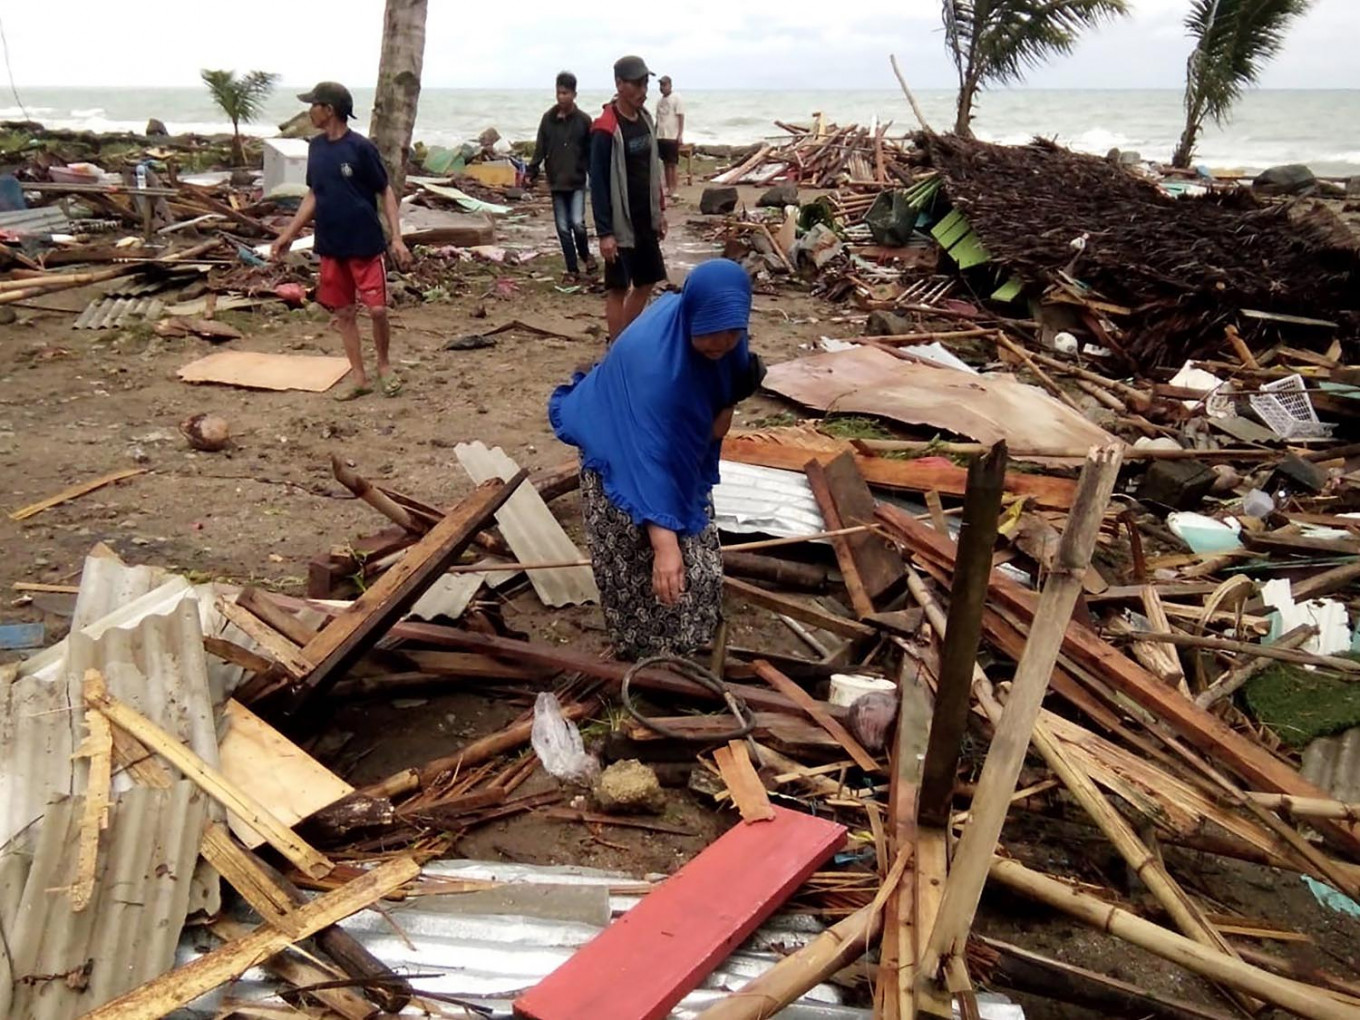 Survivor in Banten saw hundreds of people disappear under tsunami waves